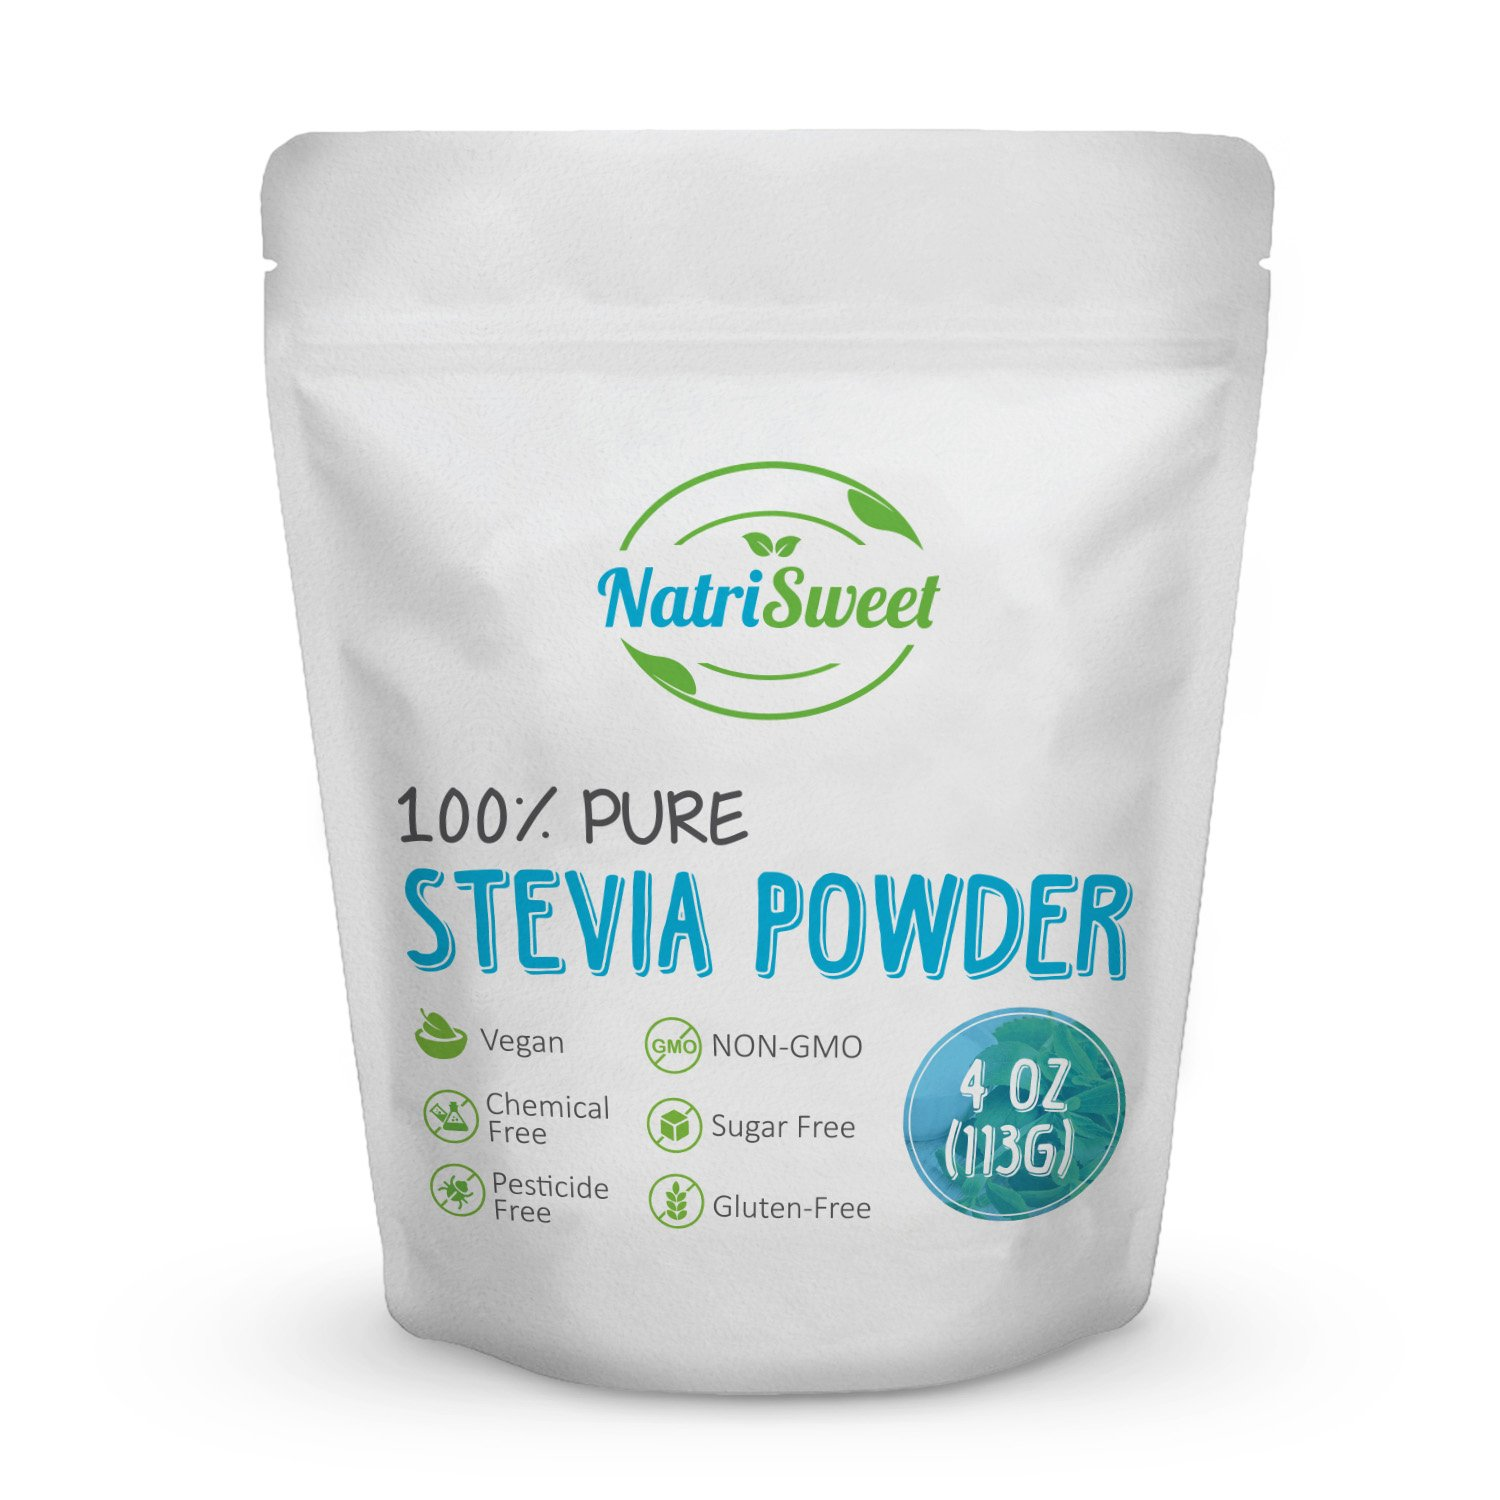 NatriSweet 100% Pure Stevia Powder 4 oz (113g) | Zero Calorie All Natural Sweetener | Sugar Substitute | No Carbohydrates | No Artificial Sweeteners | No Fillers or Binders | Vegan by NatriSweet